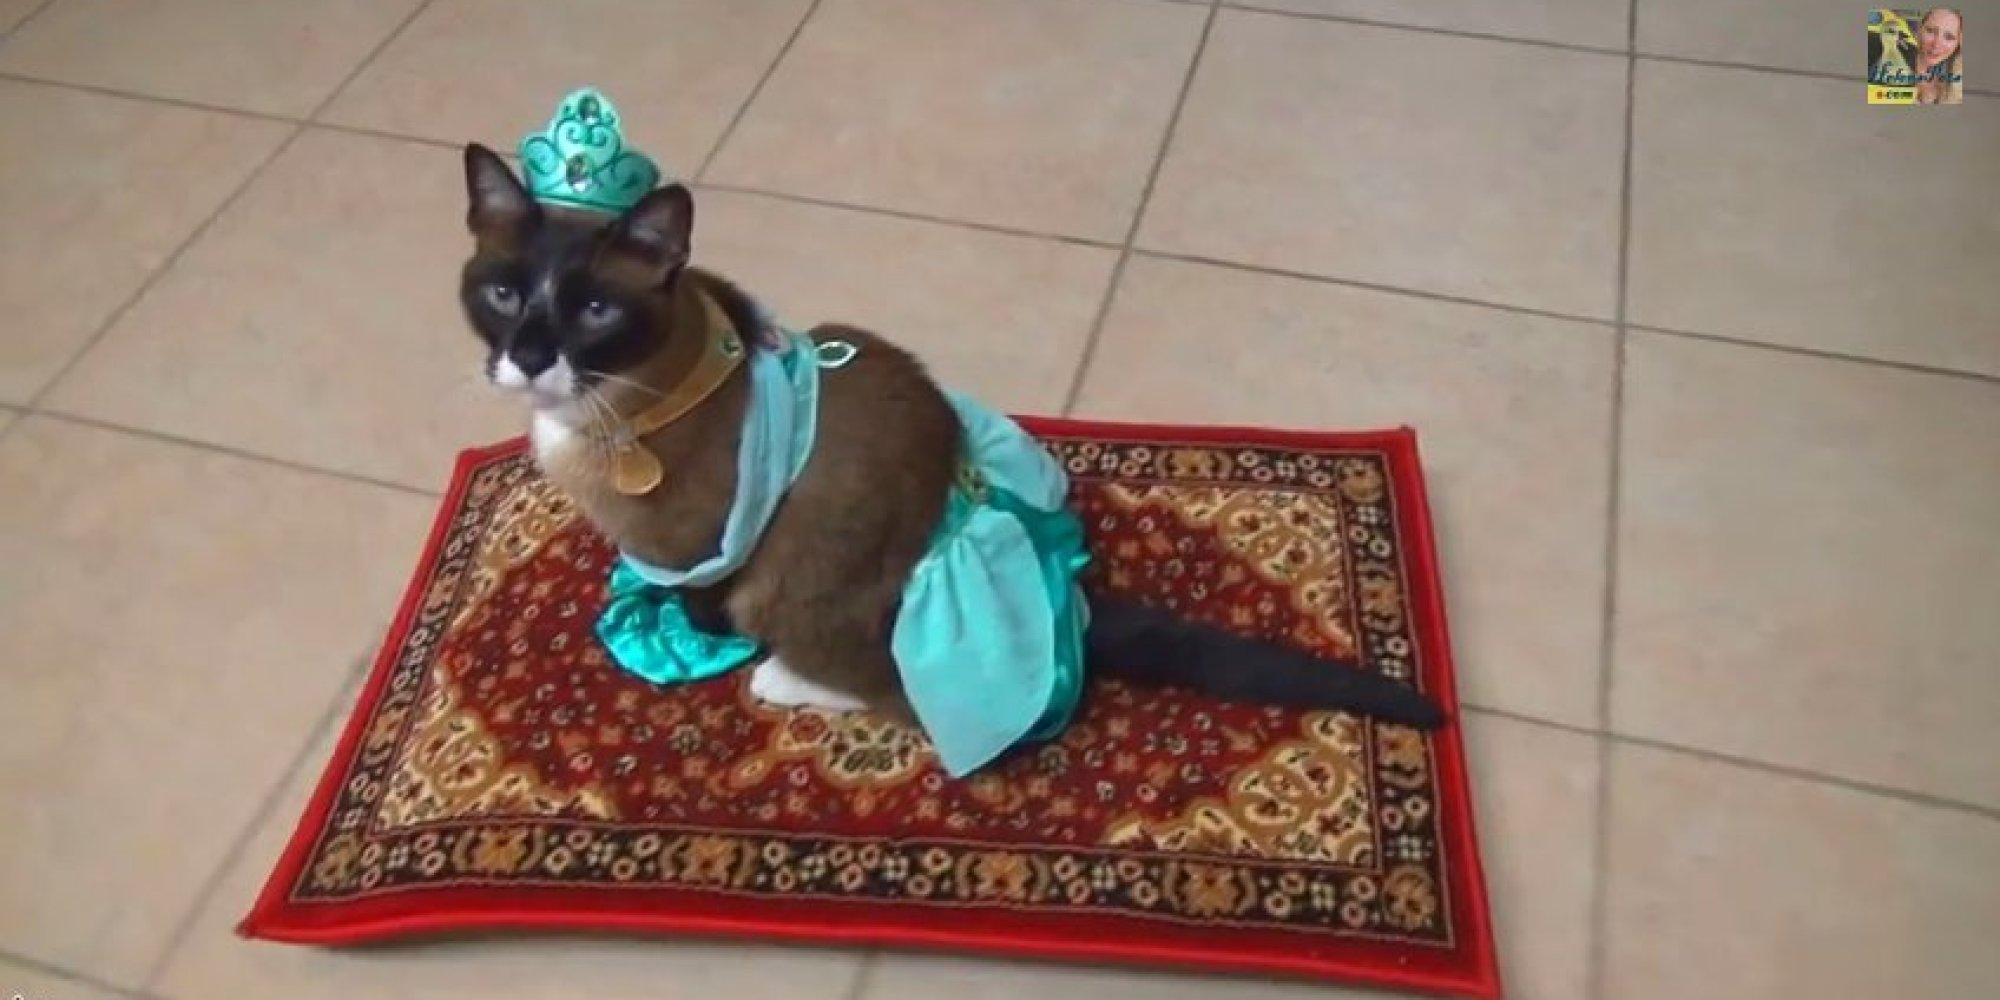 Roomba Shark Cat Gets Into The Halloween Spirit By